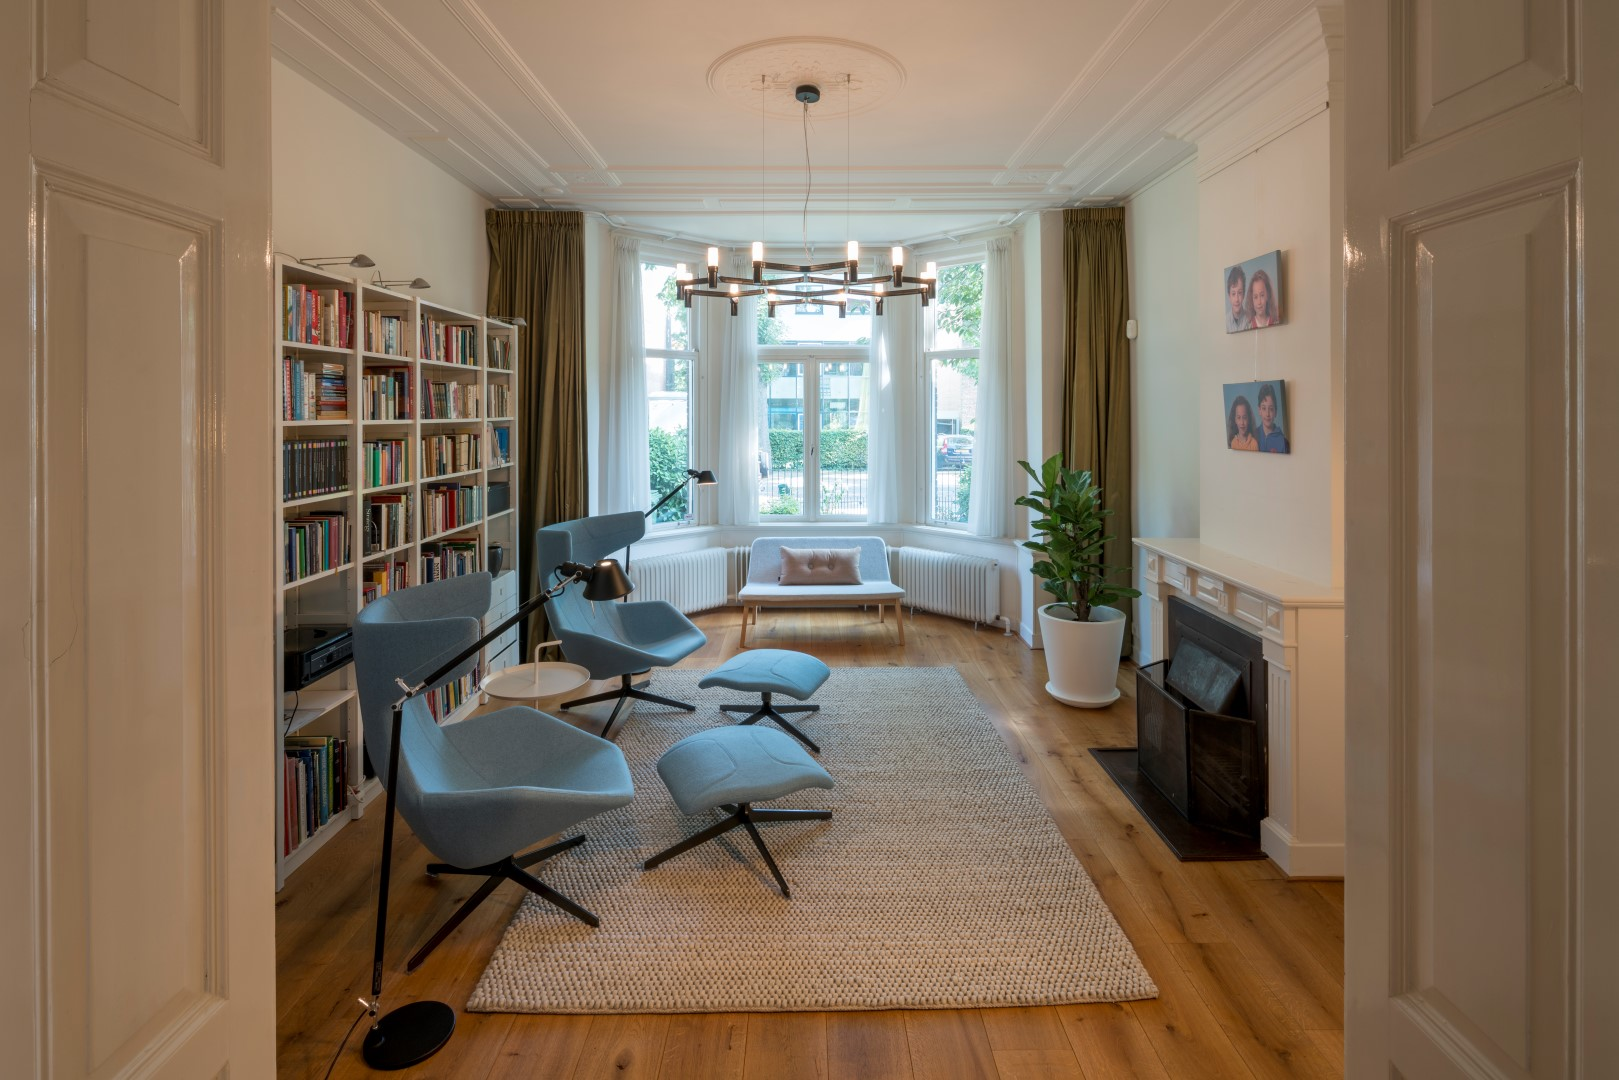 formal front room which serves as a library and reading room